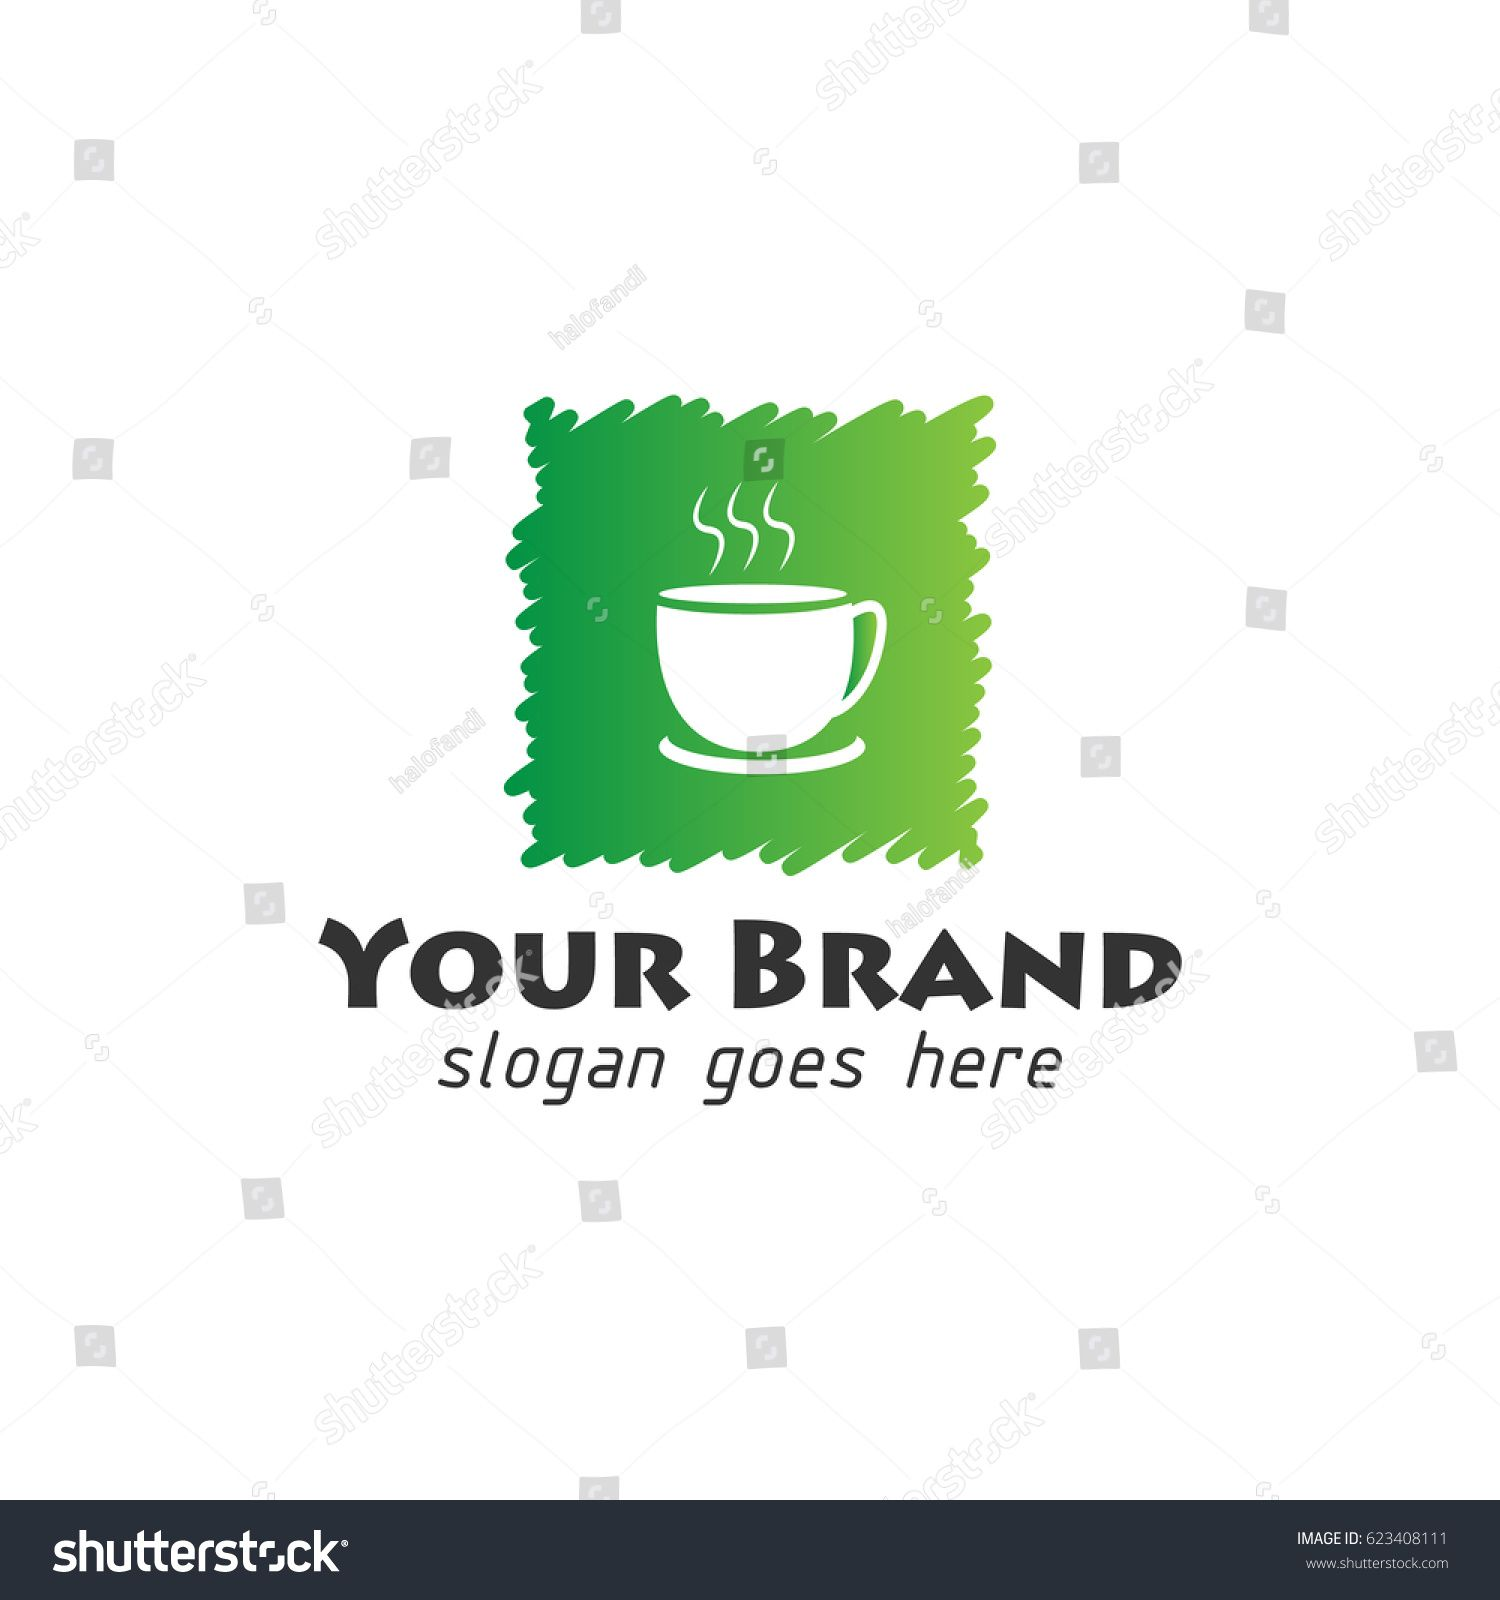 Coffee Shop Logo With Square Shape In Green Colored Conceptual Vector Circuit Tree Stock Photo Image 34279490